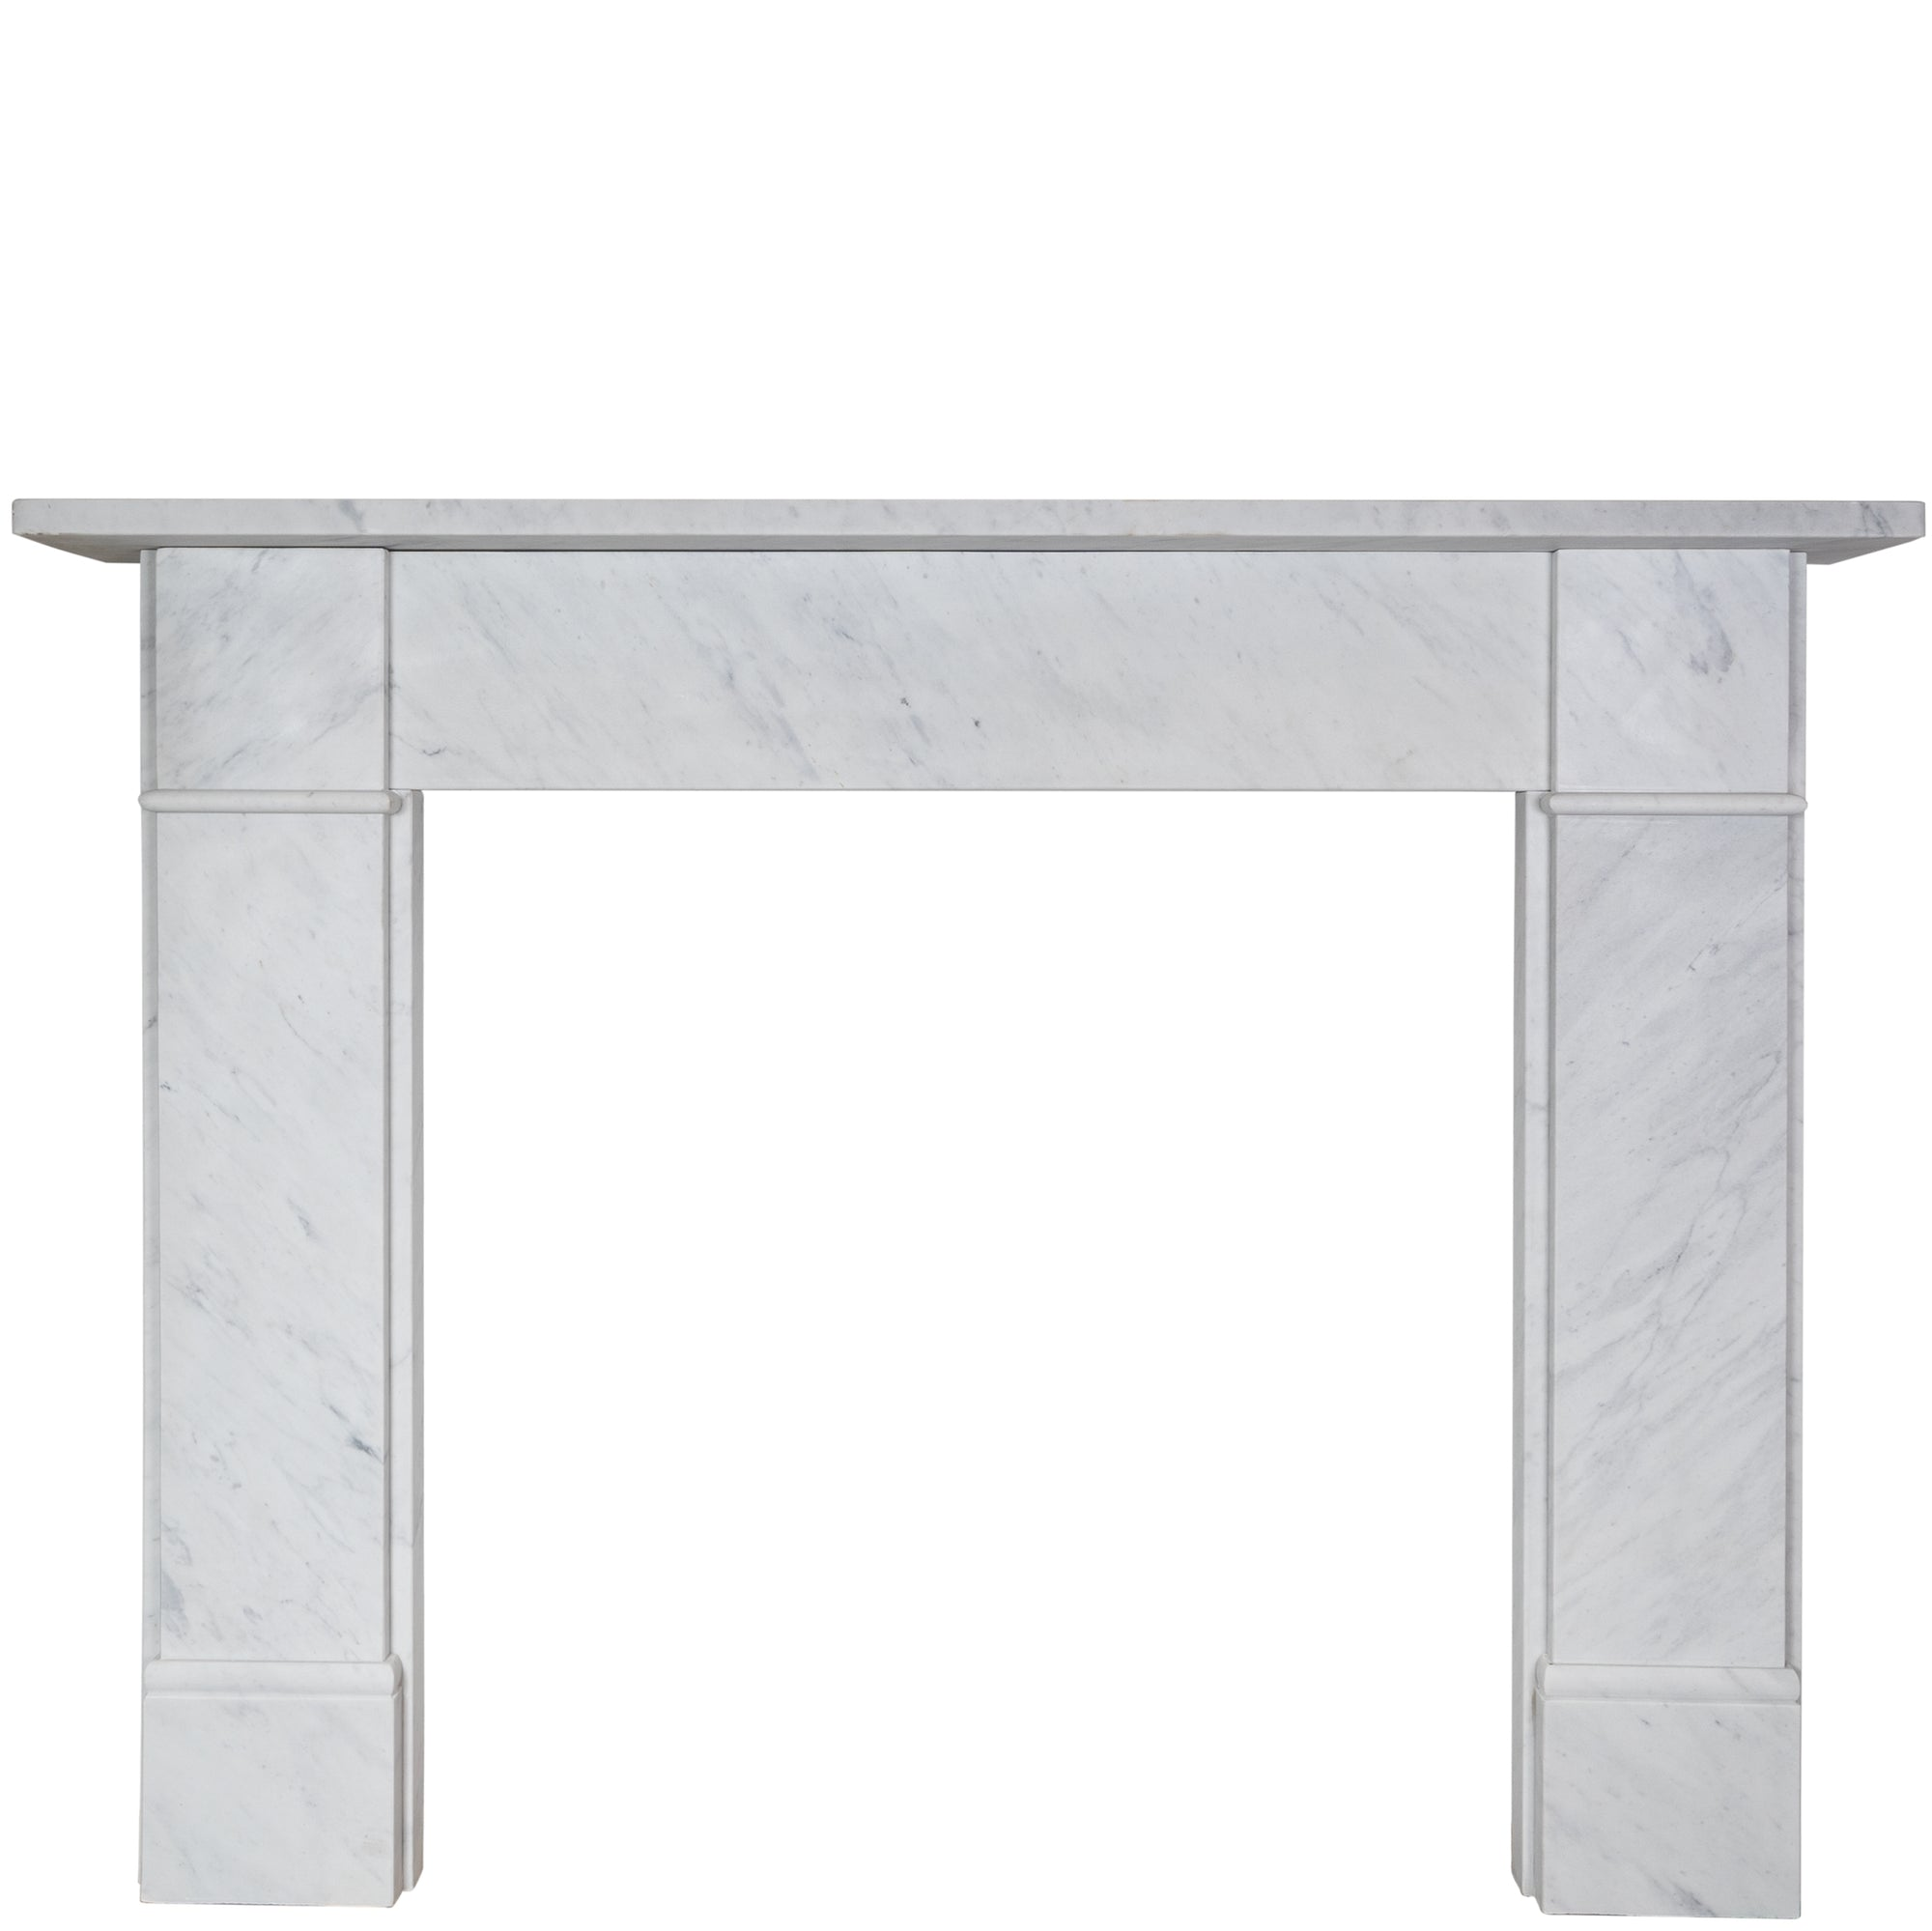 Victorian Style Carrara Marble Fireplace Surround - architectural-forum